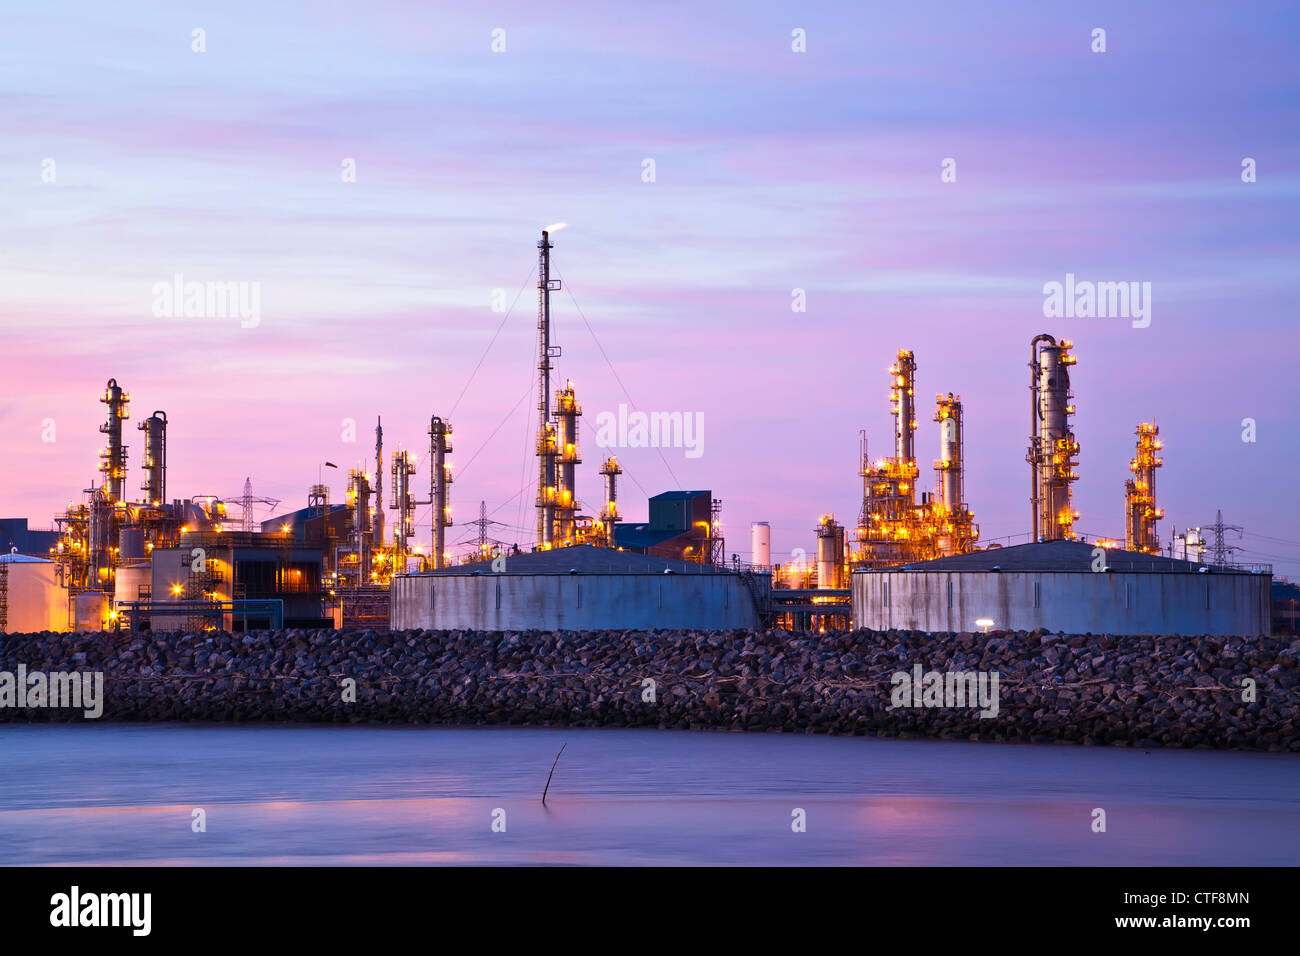 Saltend chemical works from Hedon Havon near Paull, East Yorkshire. - Stock Image